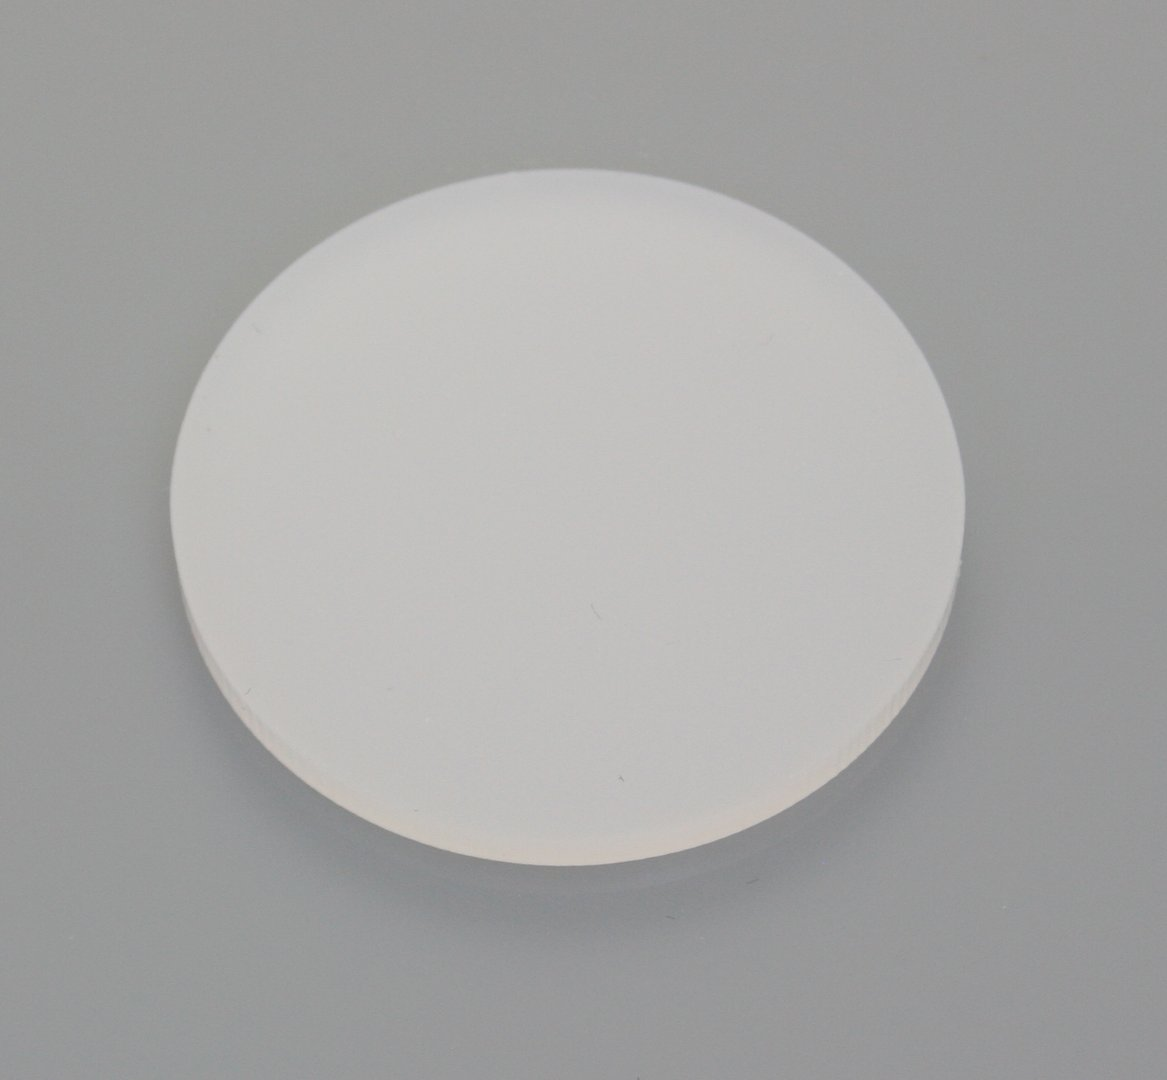 Frosted White Acrylic Discs Southern Acrylics